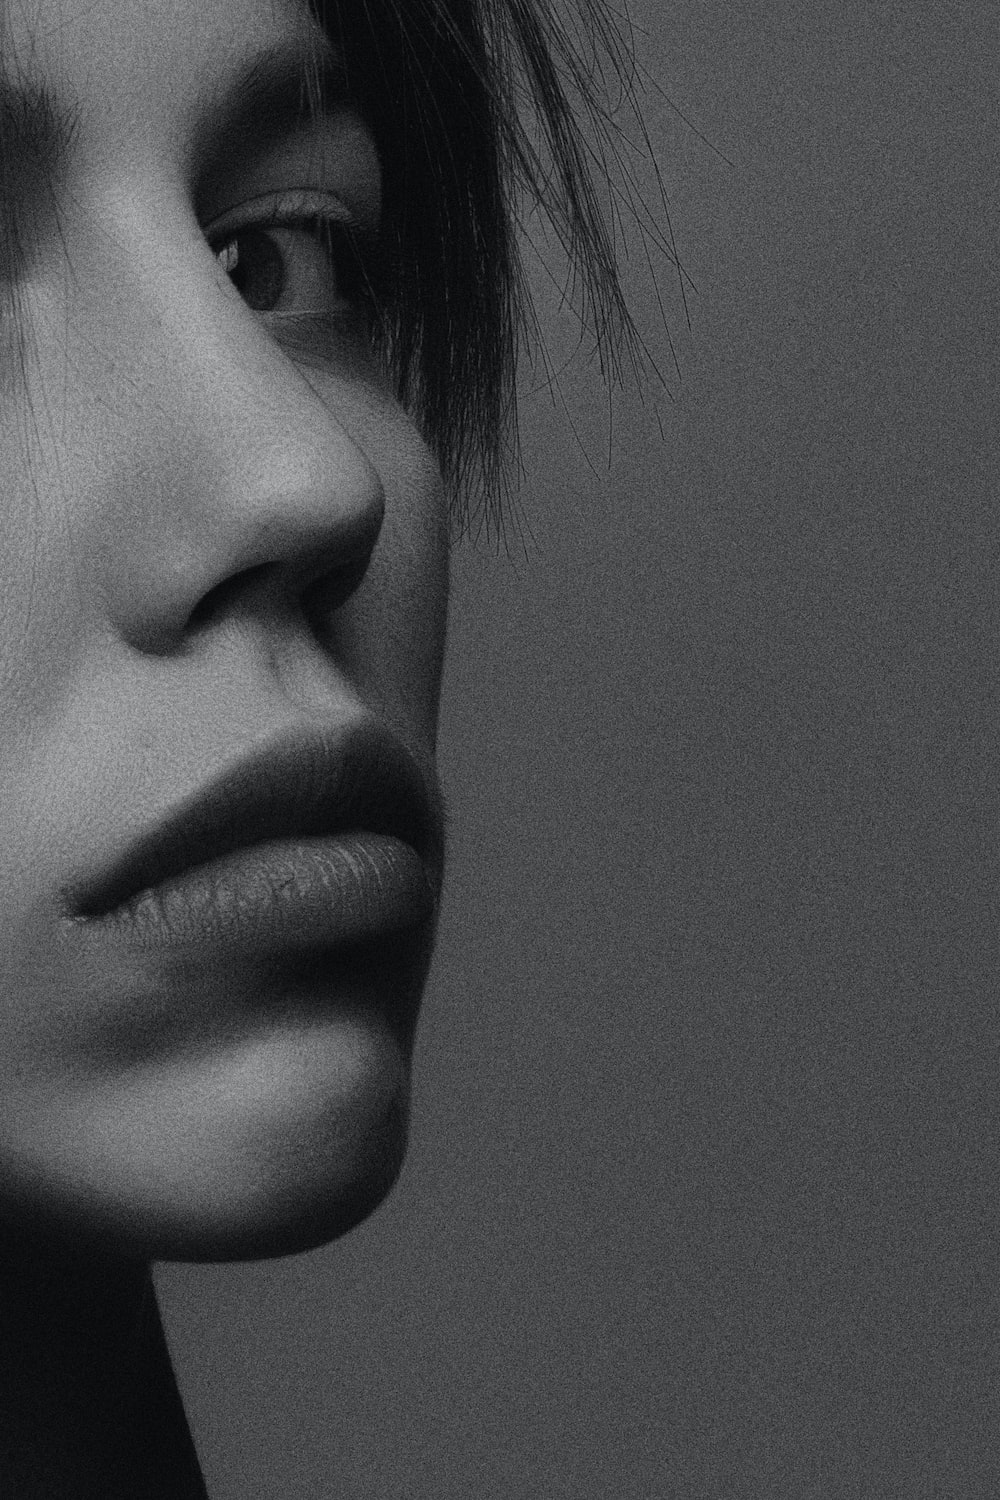 person's face in greyscale photography